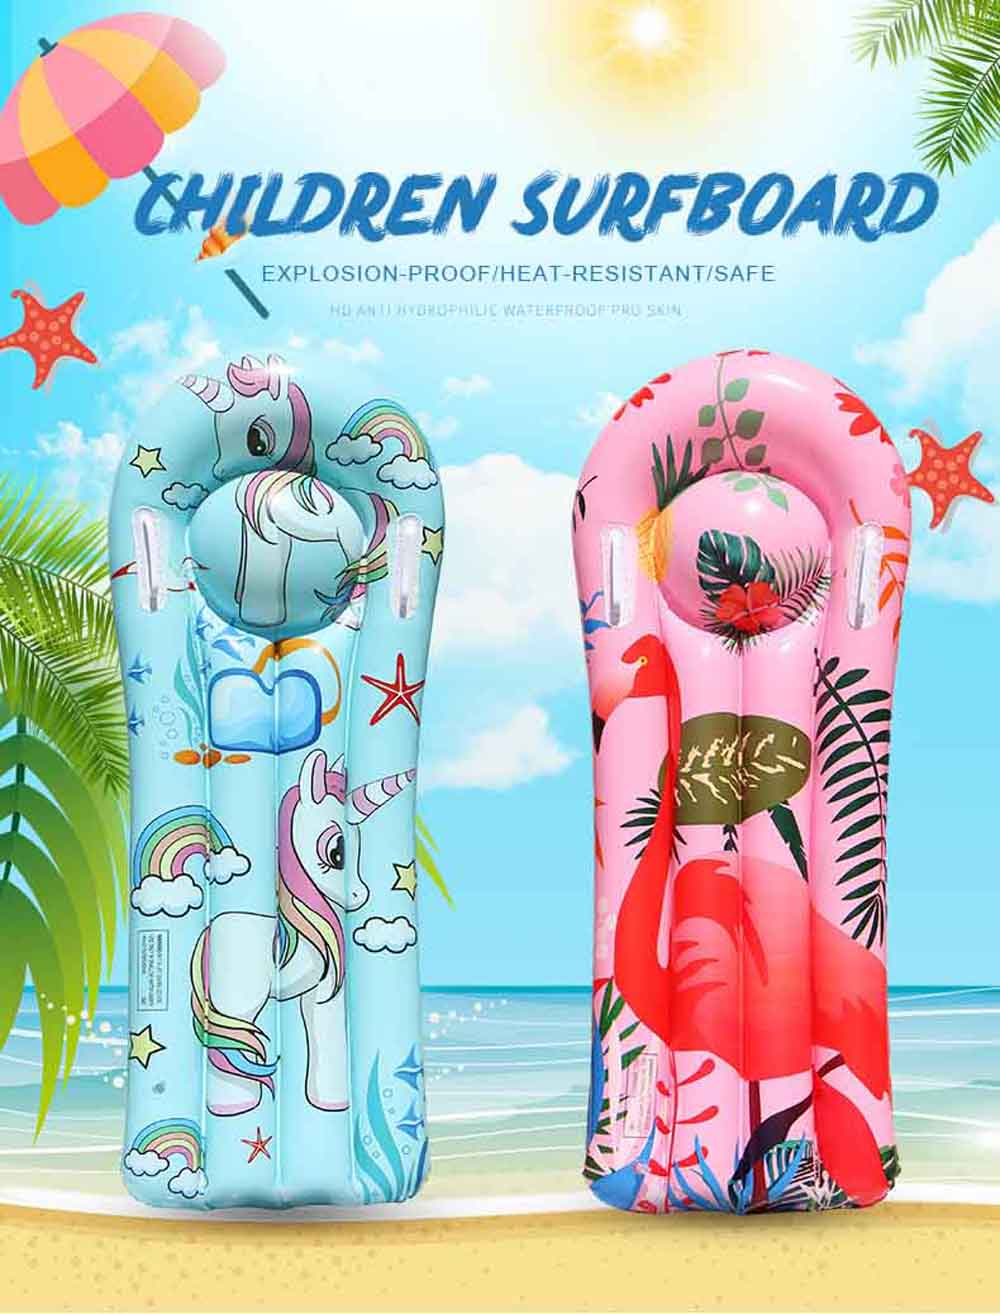 Inflatable Floating Row PVC Buoyancy Board Water Swimming Inflatable Children Surfboard - Tron Blue